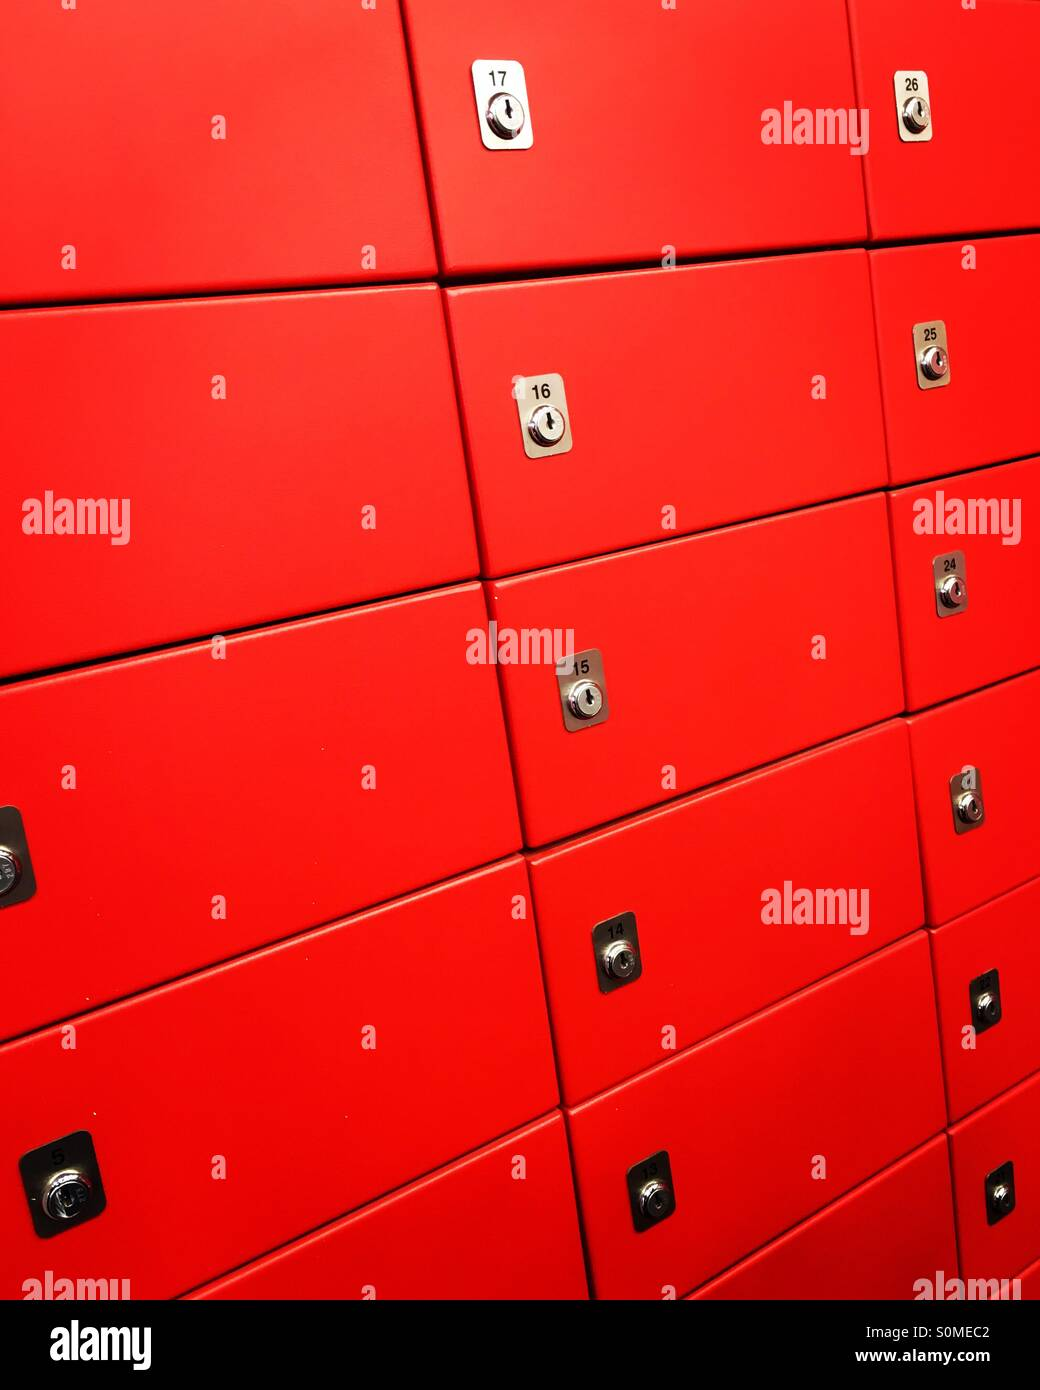 Numbered red safety deposit boxes. - Stock Image